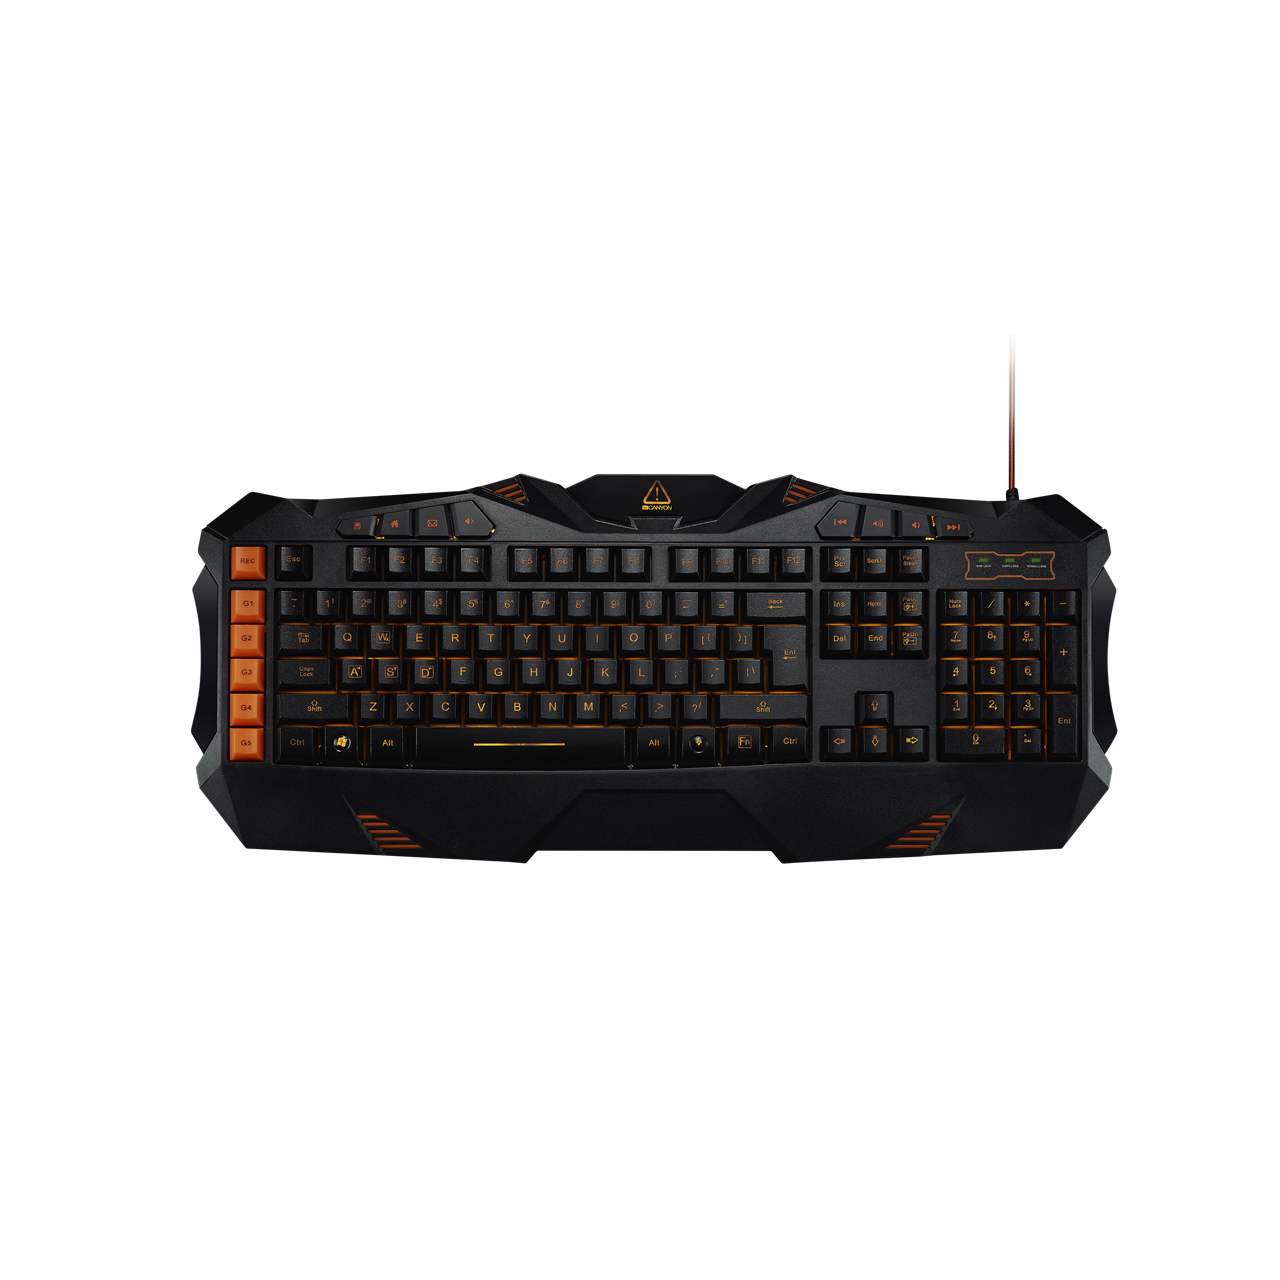 Клавиатура CANYON CND-SKB3-RU Wired multimedia gaming keyboard with lighting effect Marco setting fu